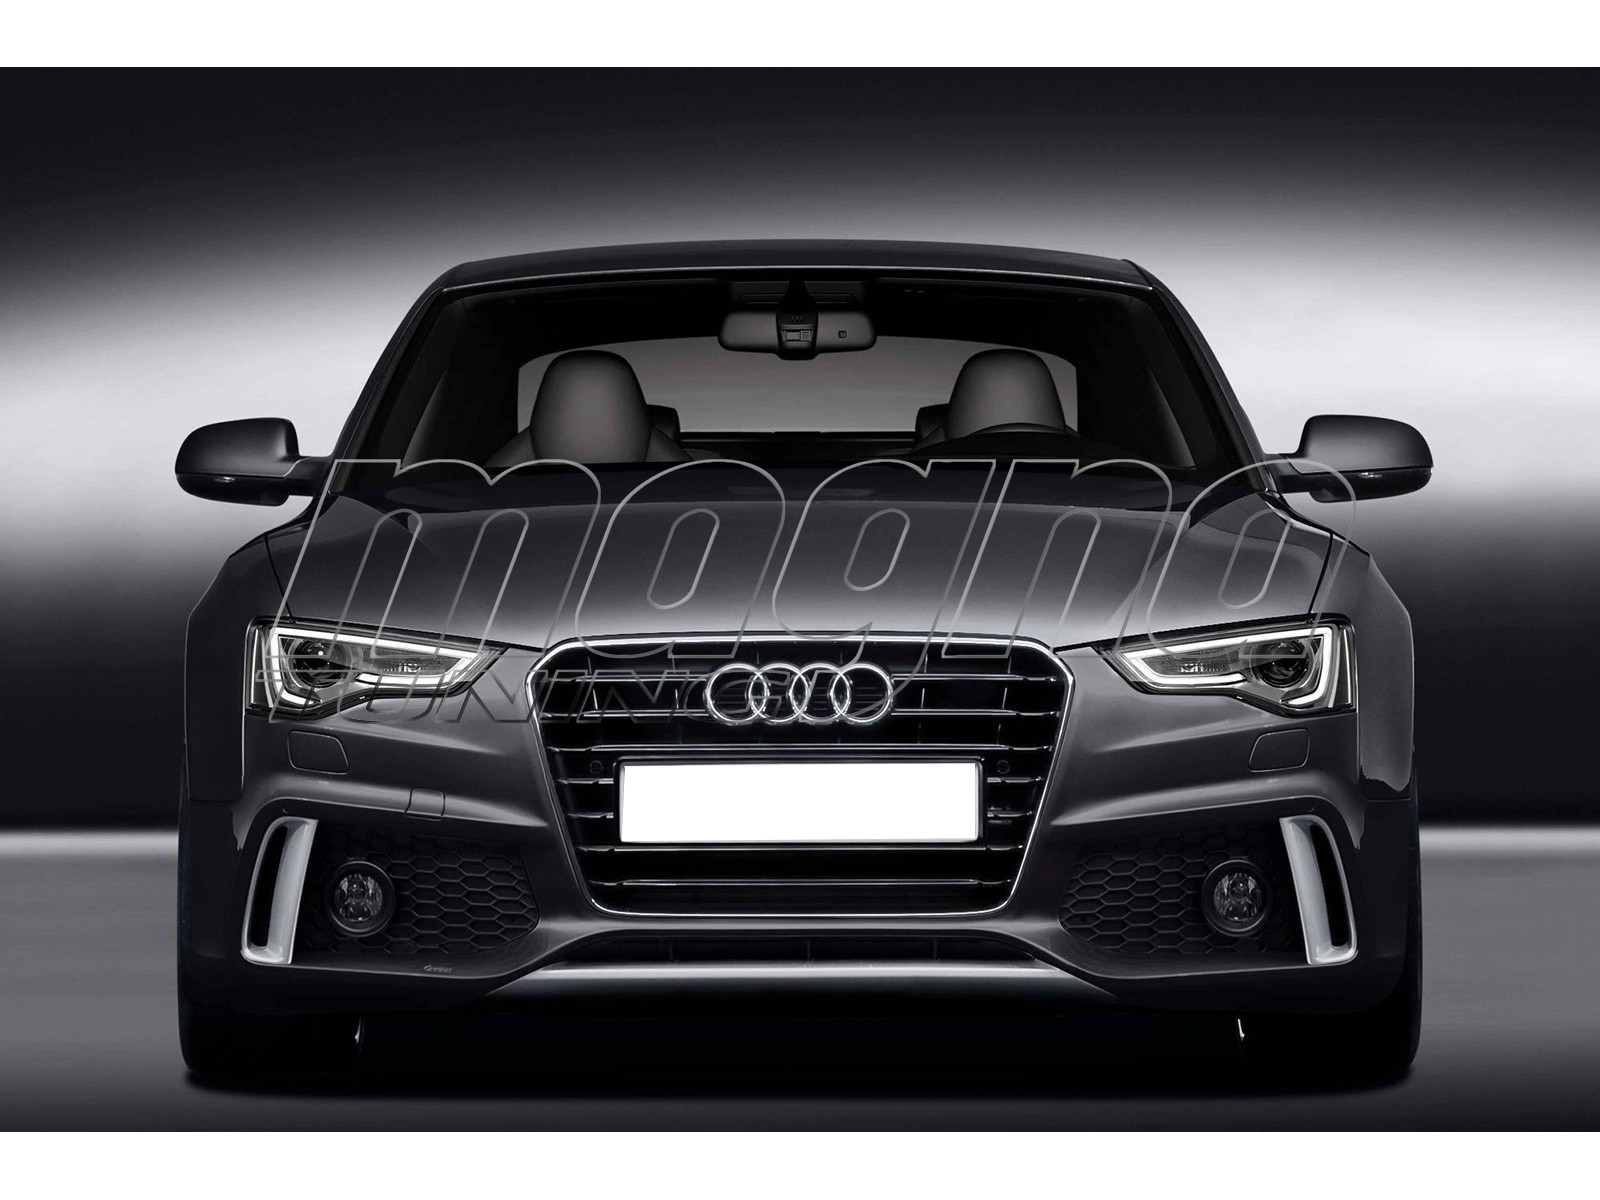 astounding audi s5 body kit aratorn sport cars. Black Bedroom Furniture Sets. Home Design Ideas